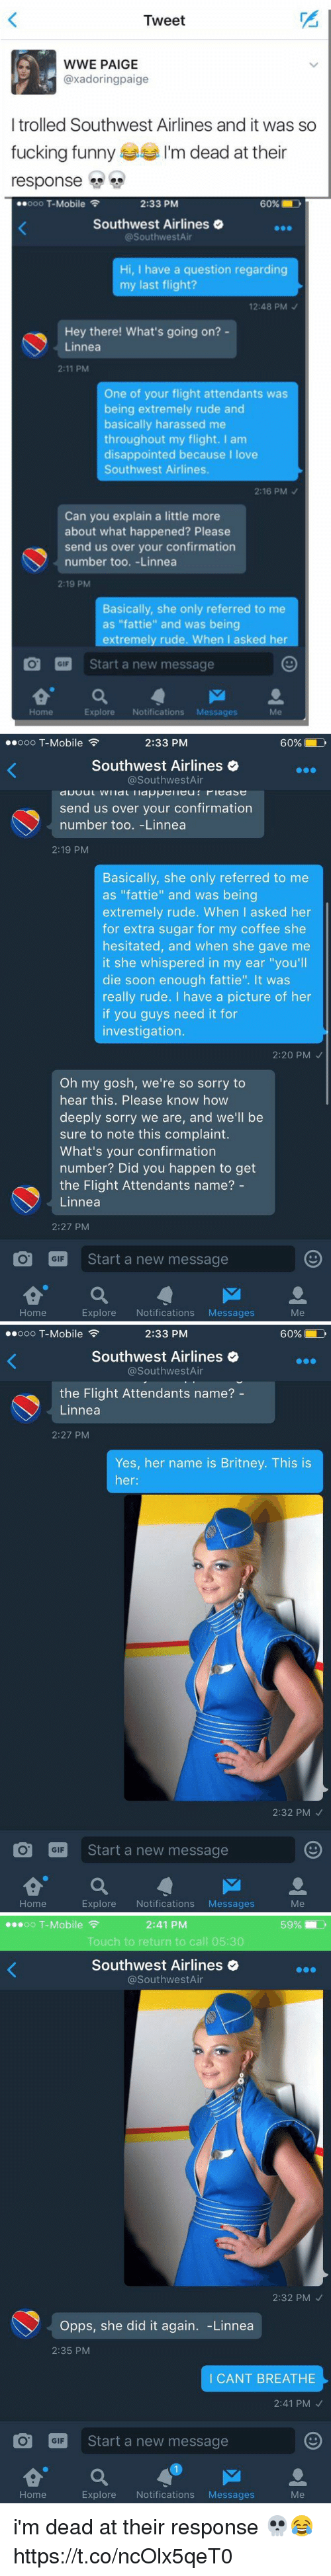 """oooo: Tweet  WWE PAIGE  axadoringpaige  I trolled Southwest Airlines and it was so  fucking funny  m dead at their  response  oooo T-Mobile  60% D  2:33 PM  Southwest Airlines  @Southwest Air  Hi, I have a question regarding  my last flight?  12:48 PM  Hey there! What's going on?  Linnea  2:11 PM  One of your flight attendants was  being extremely rude and  basically harassed me  throughout my flight. I am  disappointed because  I love  Southwest Airlines.  2:16 PM  Can you explain a little more  about what happened? Please  send us over your confirmation  number too. -Linnea  2:19 PM  Basically, she only referred to me  as """"fattie"""" and was being  extremely rude. When I asked her  O GIF  Start a new message  Home  Explore  Notifications  Messages   ..ooo T-Mobile  2:33 PM  60% D  Southwest Airlines  @Southwest Air  send us over your confirmation  number too. -Linnea  2:19 PM  Basically, she only referred to me  as """"fattie"""" and was being  extremely rude. When I asked her  for extra sugar for my coffee she  hesitated, and when she gave me  it she whispered in my ear """"you'll  die soon enough fattie"""". It was  really rude. I have a picture of her  if you guys need it for  investigation.  2:20 PM  Oh my gosh, we're so sorry to  hear this. Please know how  deeply sorry we are, and we'll be  sure to note this complaint.  What's your confirmation  number? Did you happen to get  the Flight Attendants name?  Linnea  2:27 PM  O GIF  Start a new message  a M  Explore  Notifications  Messages  Home   ..ooo T-Mobile  60% LD  2:33 PM  Southwest Airlines  Southwest Air  the Flight Attendants name?  Linnea  2:27 PM  Yes, her name is Britney. This is  her  2:32 PM  O GIF  Start a new message  a M  Home  Explore  Notifications  Messages  Me   oo T-Mobile  F  2:41 PM  Touch to return to call 05:30  Southwest Airlines  @Southwest Air  2:32 PM  Opps, she did it again  Linnea  2:35 PM  I CANT BREATHE  2:41 PM  O GIF  Start a new message  Home  Explore  Notifications  Messages  Me i'm dead """